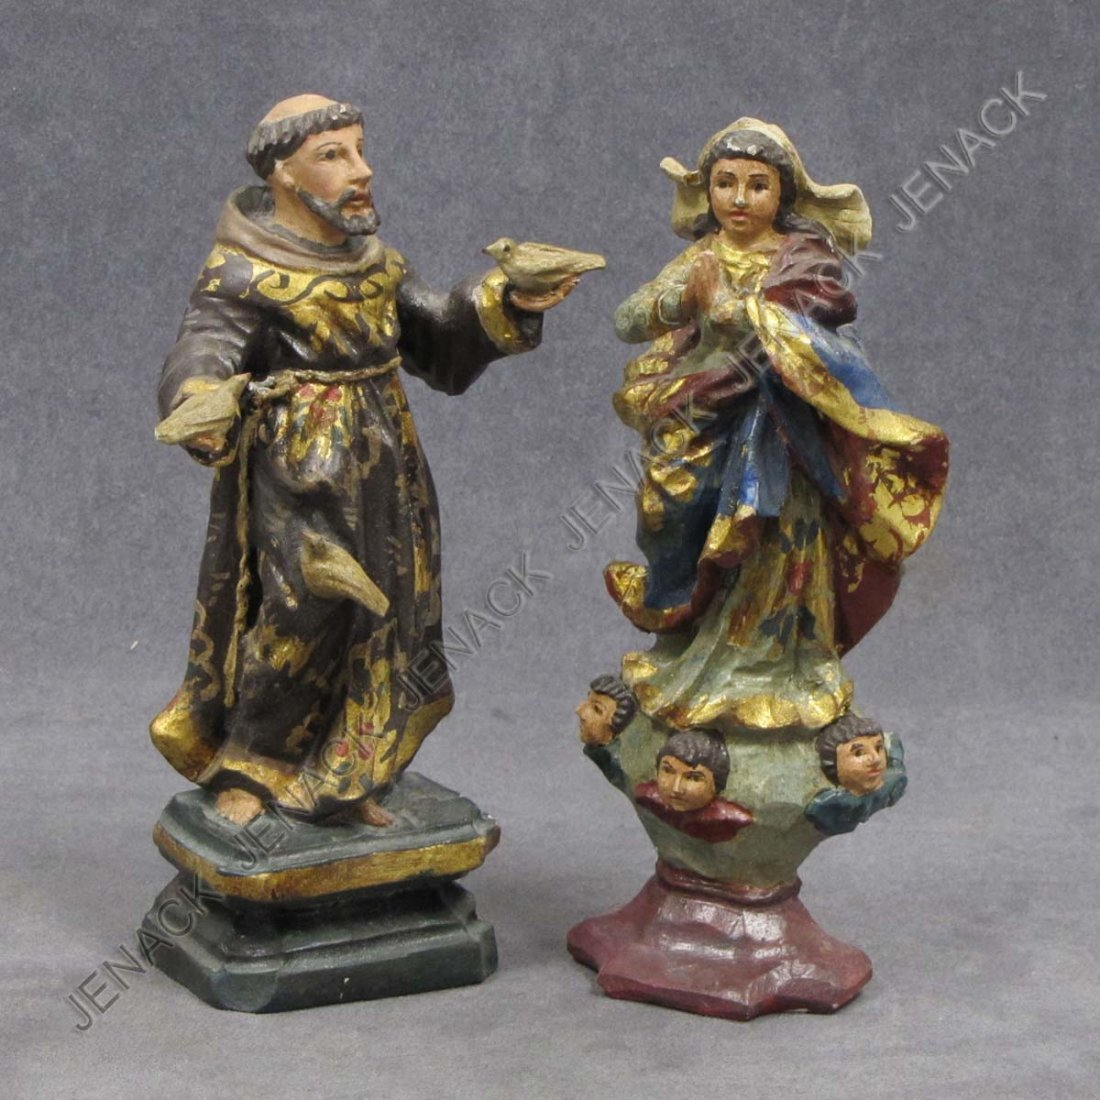 20: LOT (2) SPANISH COLONIAL CARVED AND PAINTED SANTOS